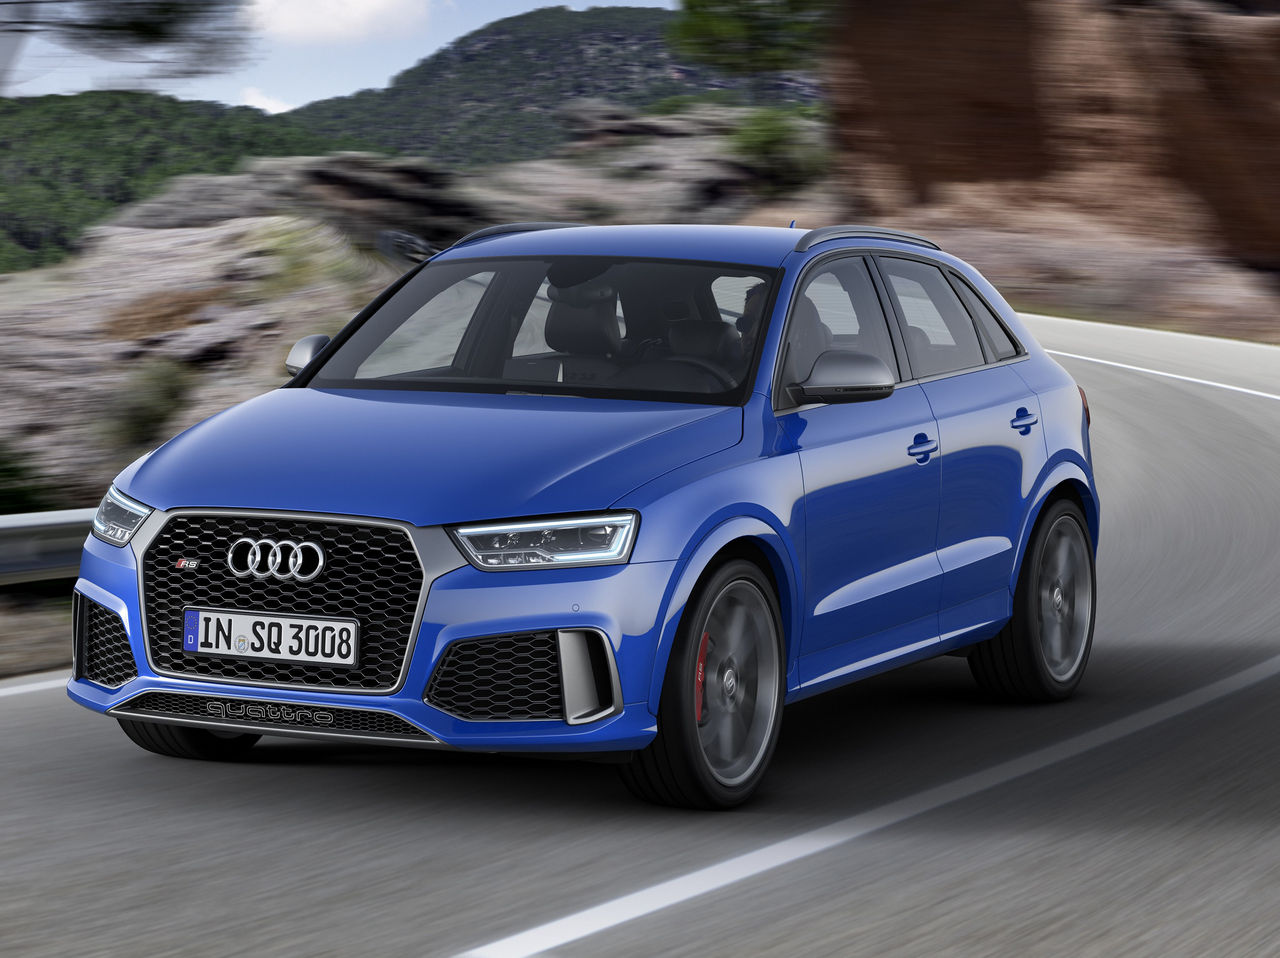 audi-rs-q3-performance-2016_0-100_10